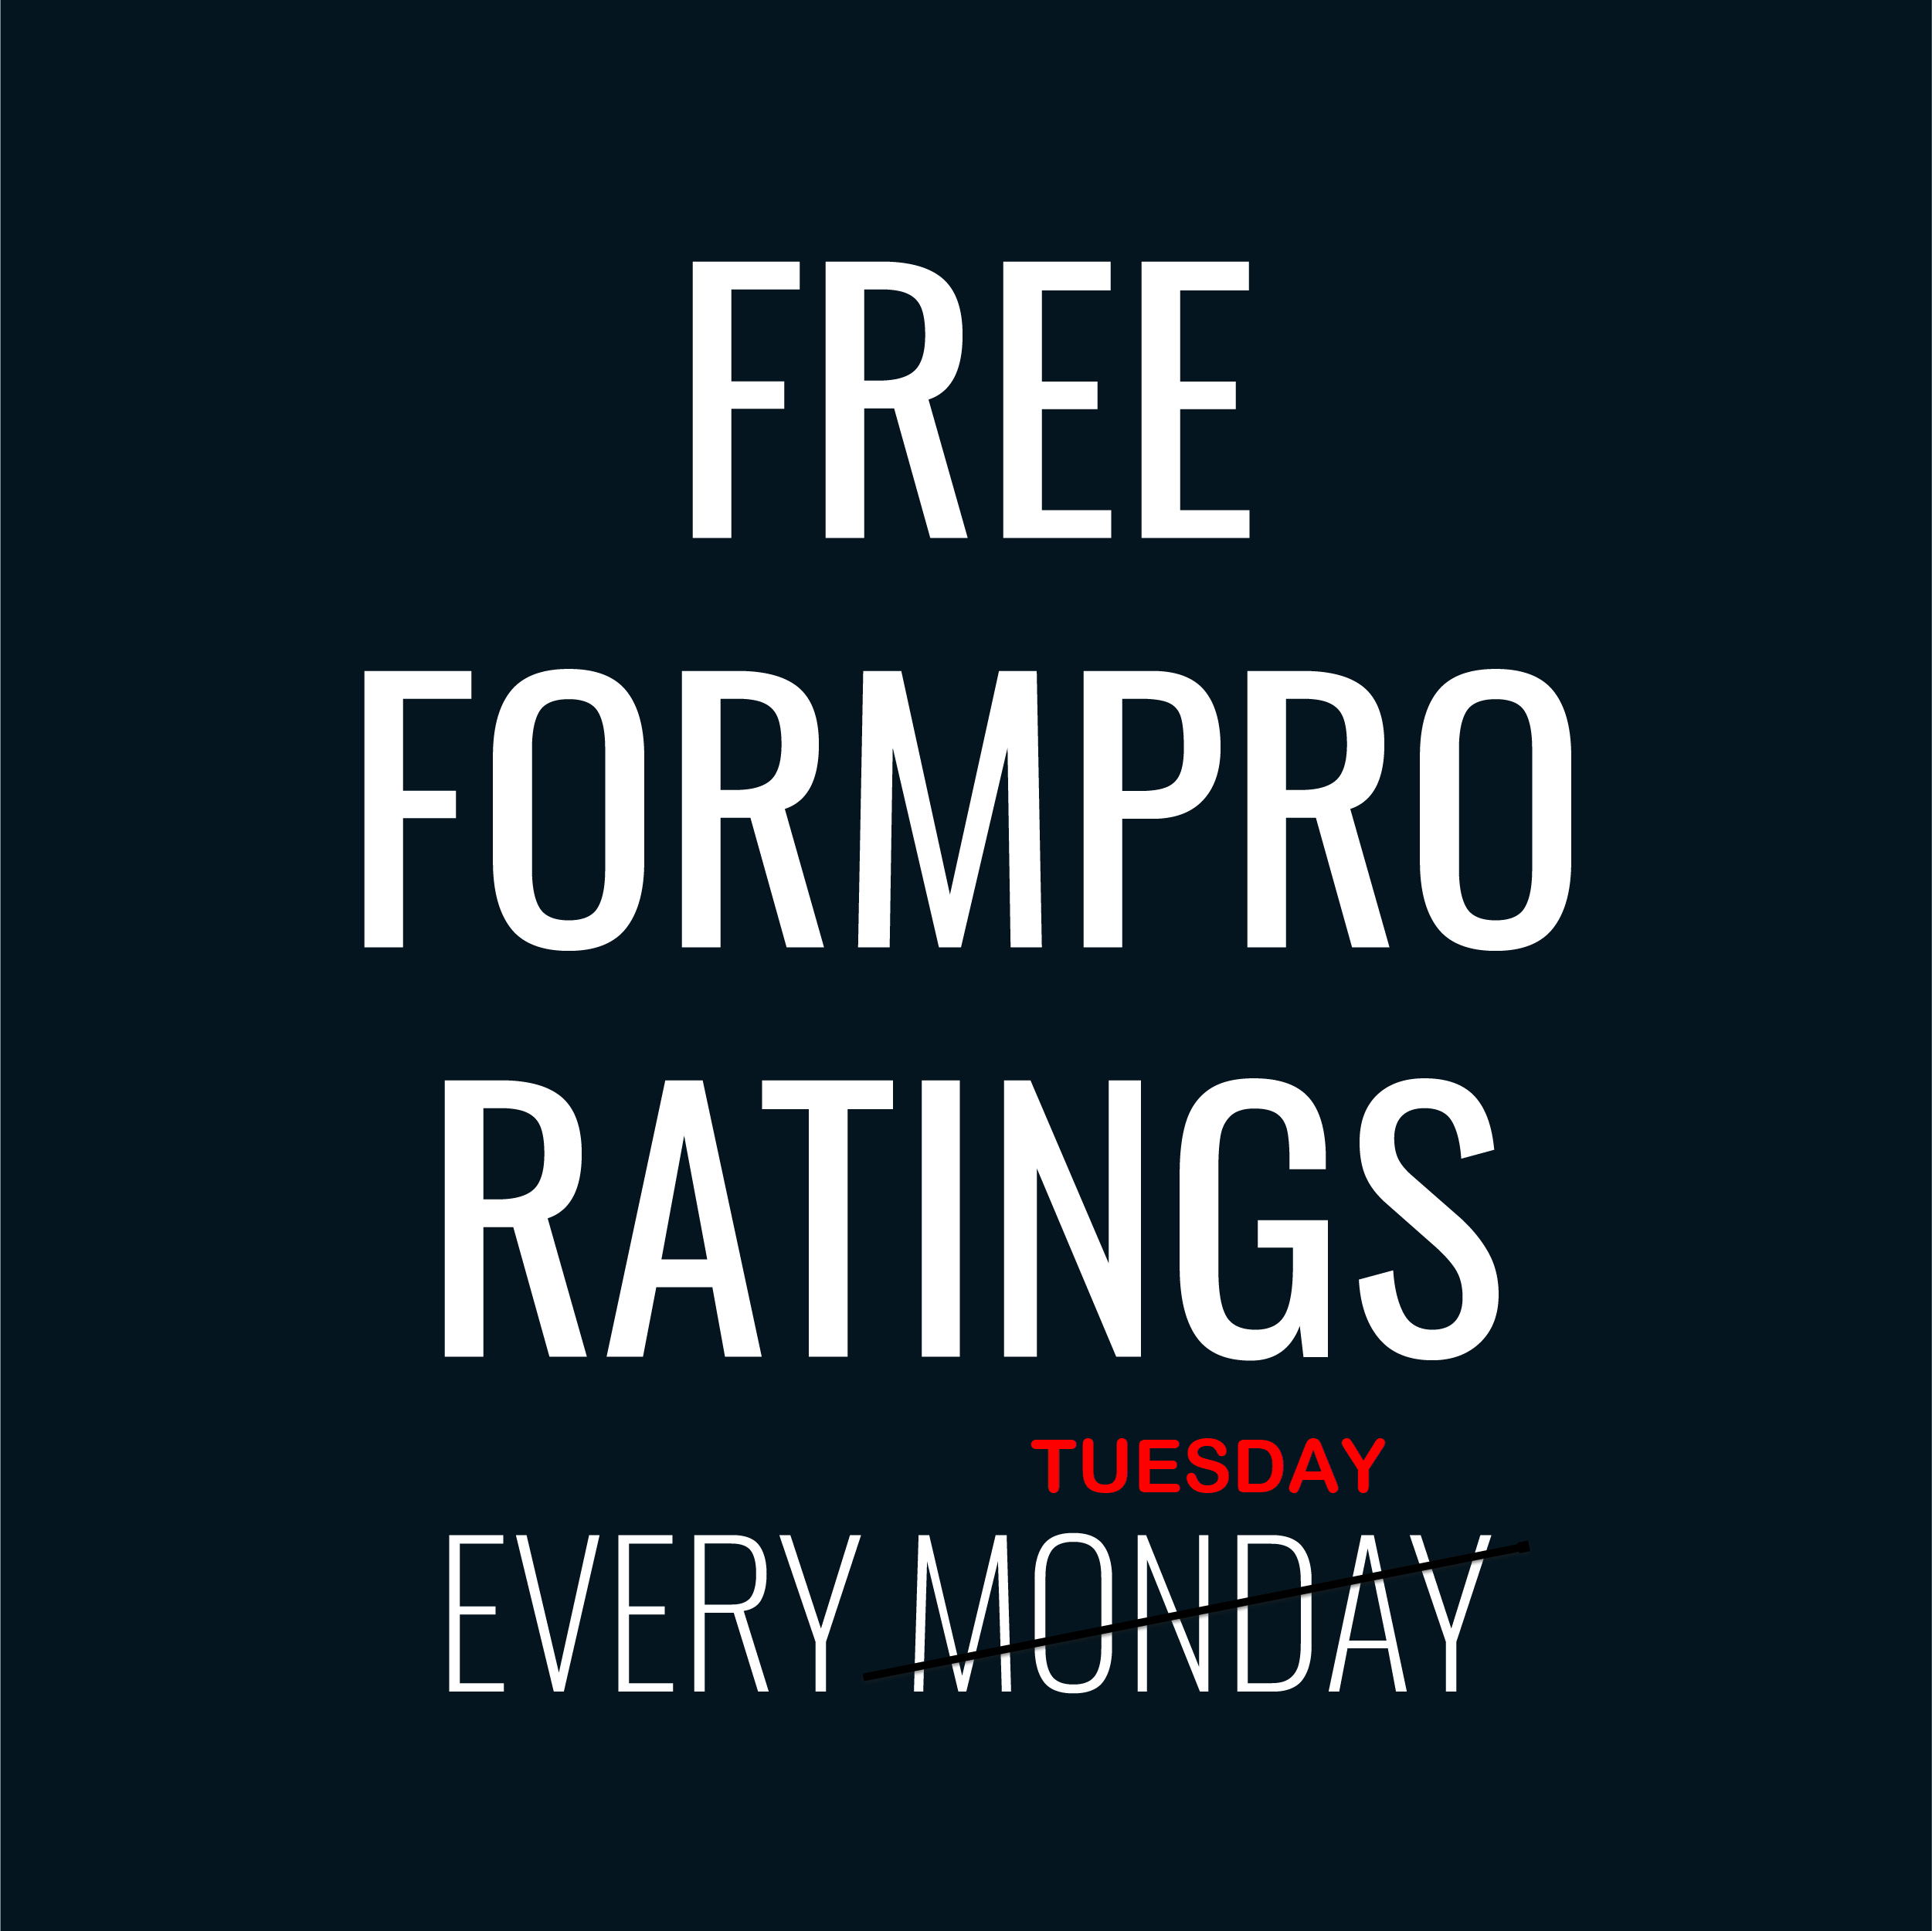 Free Greyhound Ratings Tuesday 1 March 2021